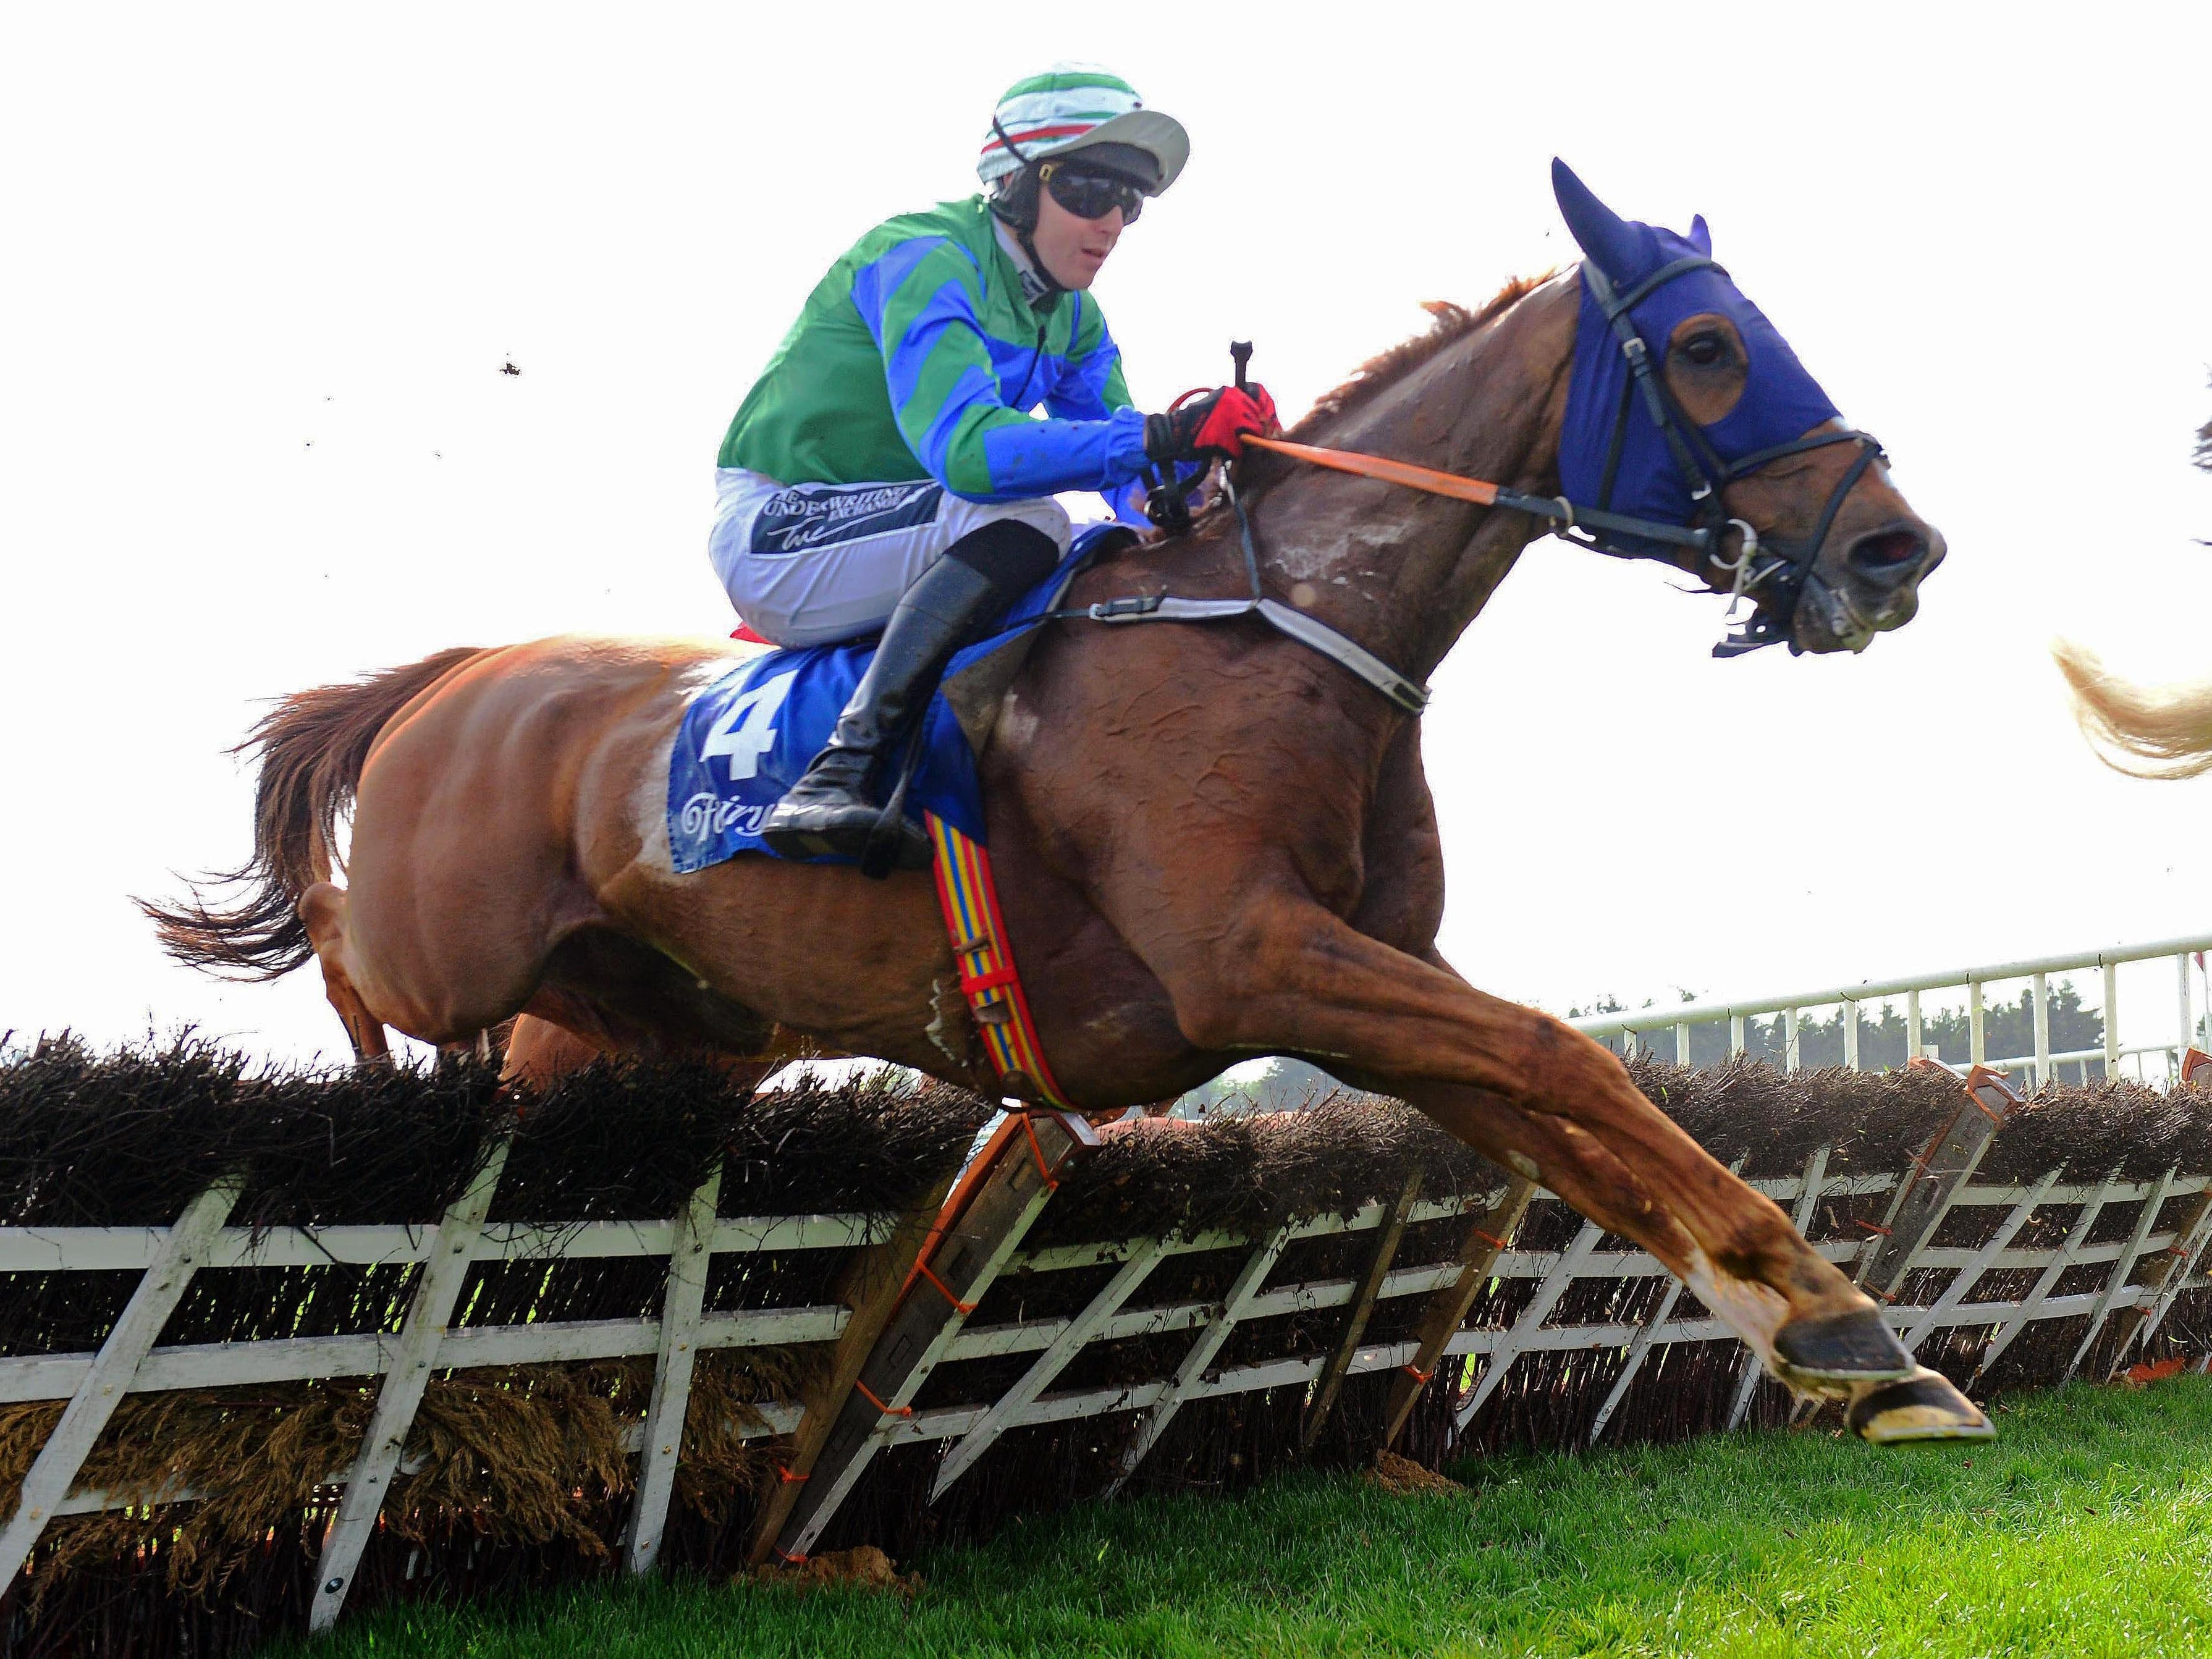 Ronald Pump has been ruled out of Cheltenham due to injury (PA)